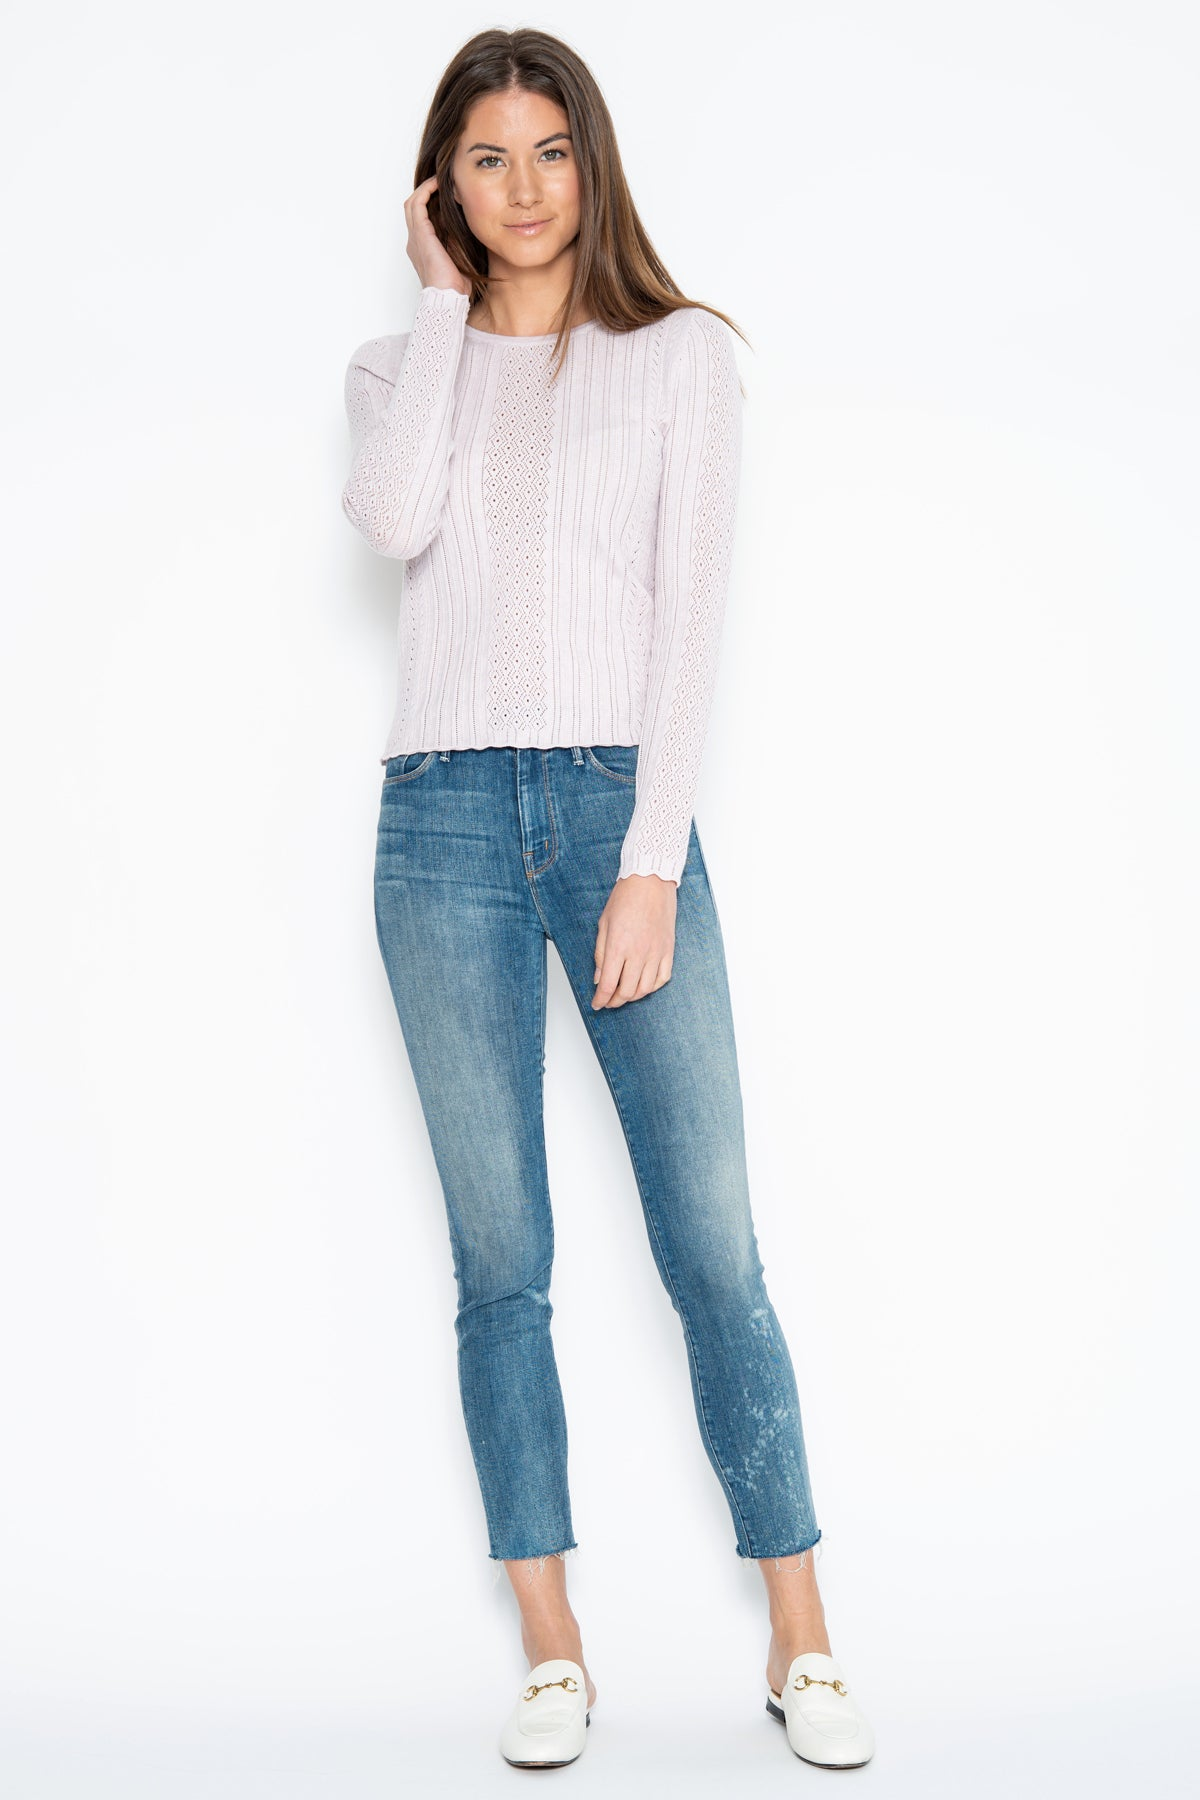 Jilly L/S Top - Oyster